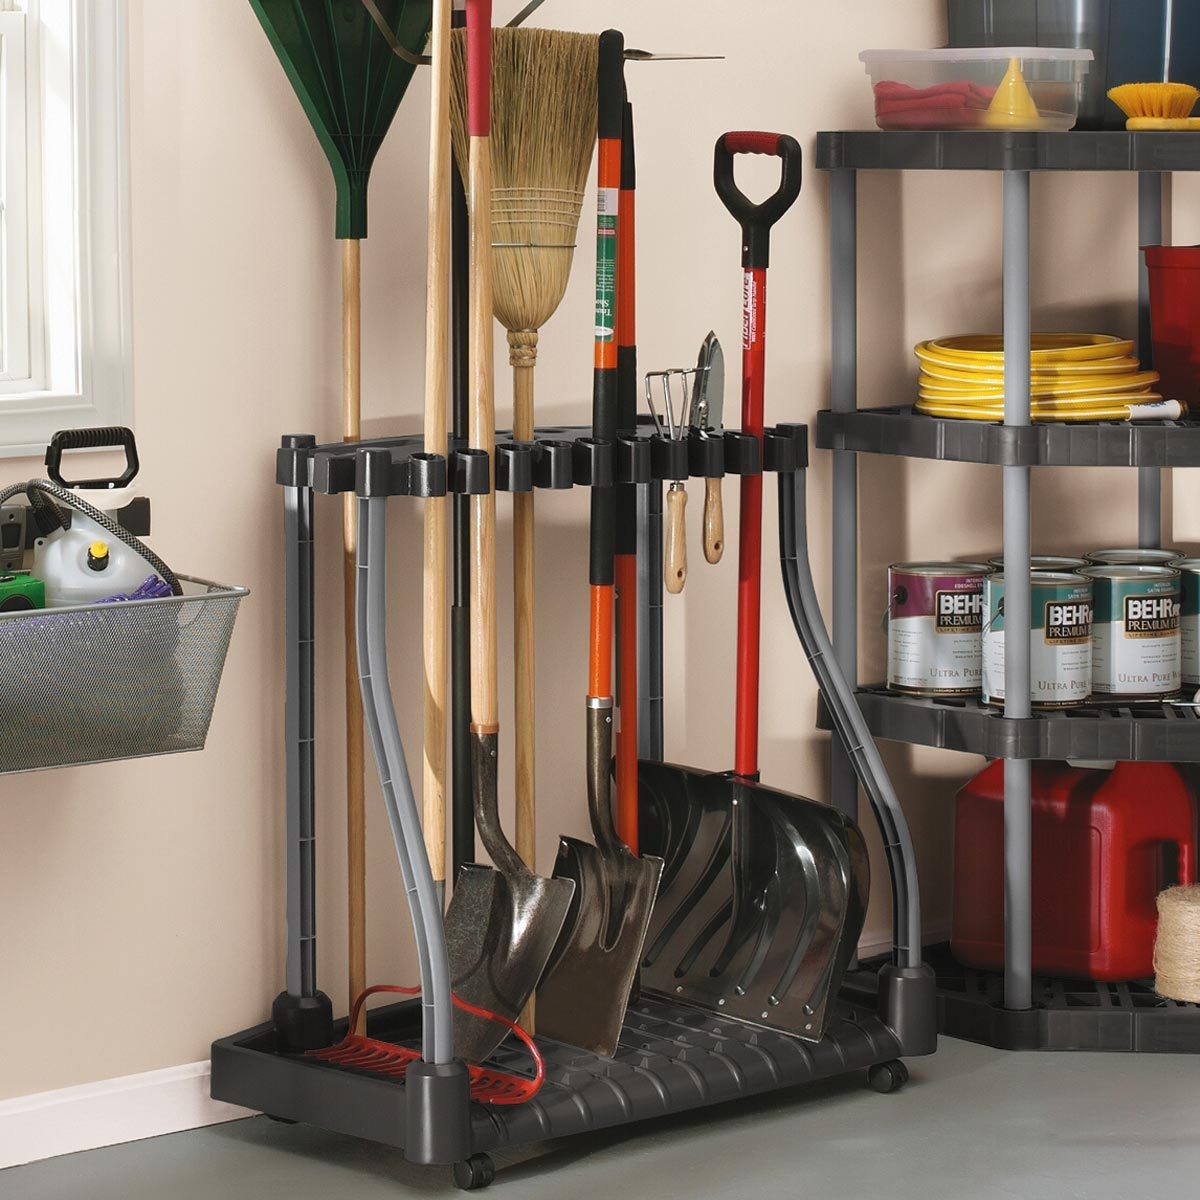 garden tool storage rubbermaid deluxe tool tower AWZNTME